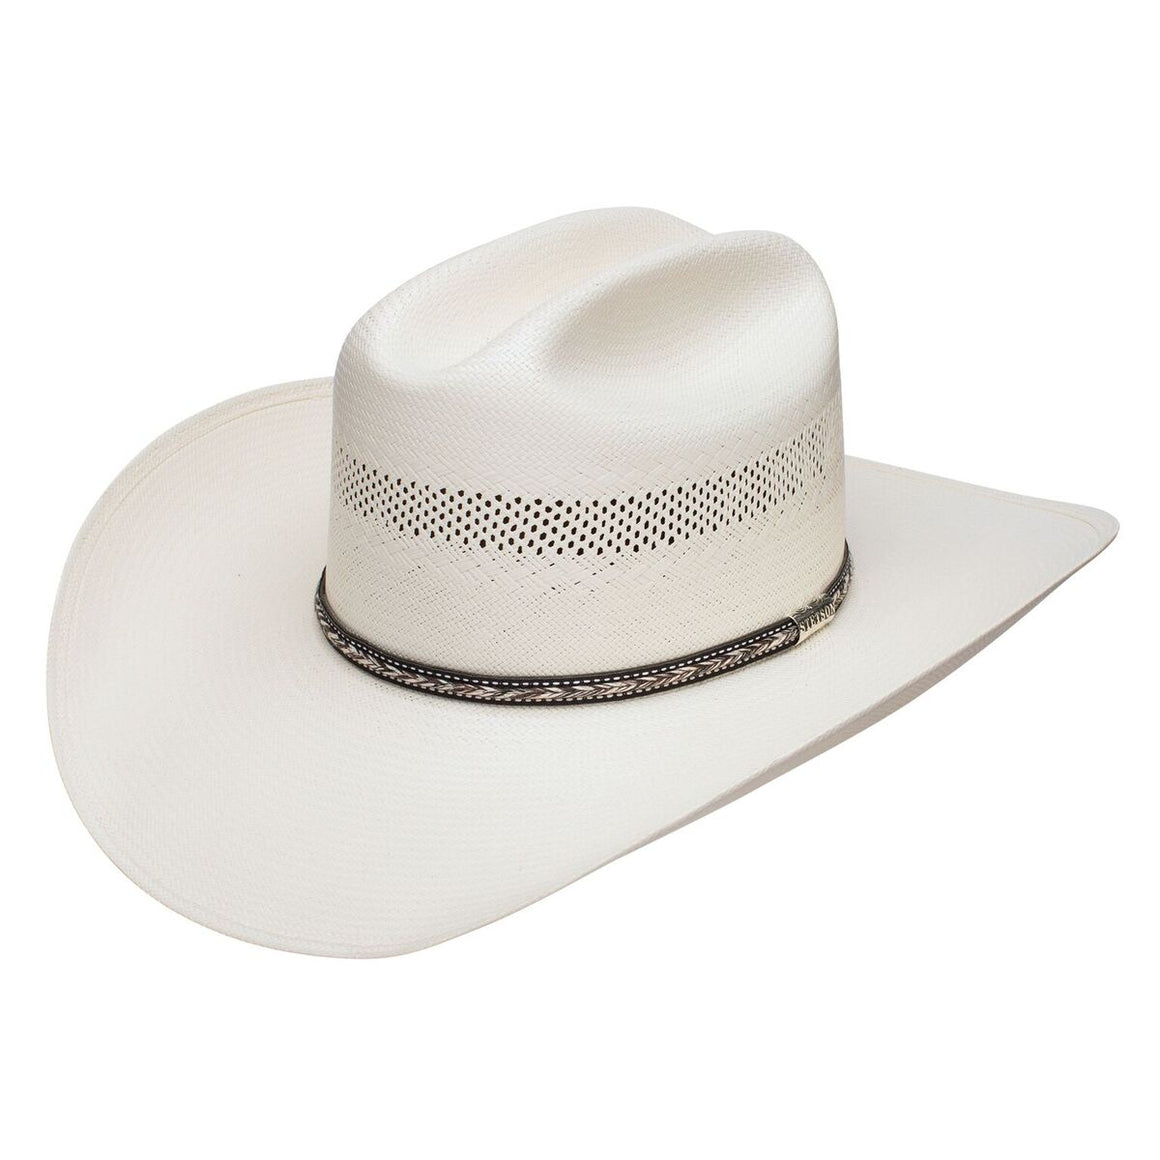 Stetson Grey Star Straw